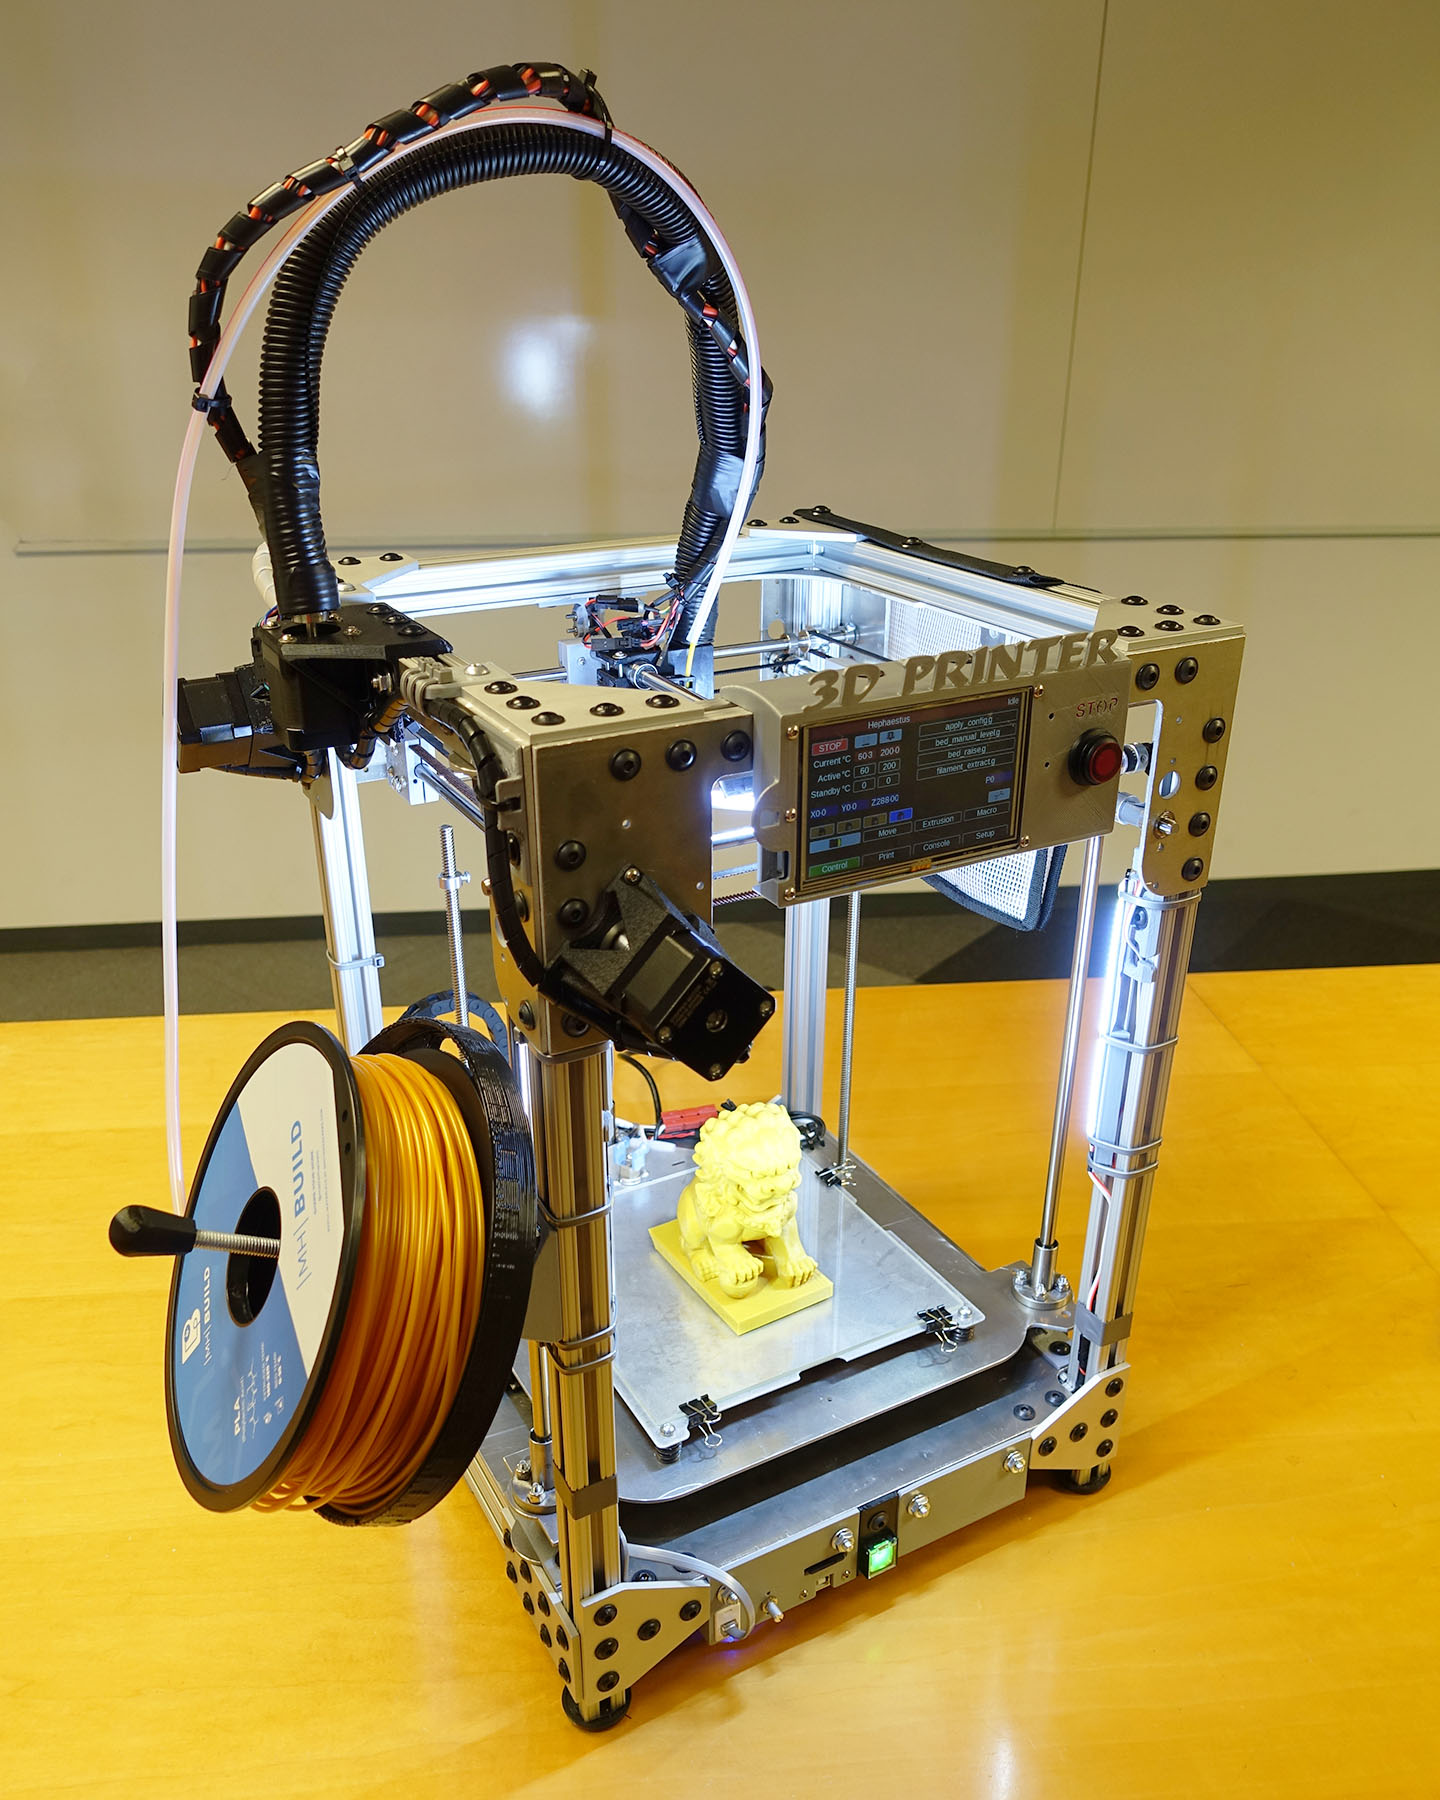 Hephaestus – a fully DIY 3D printer